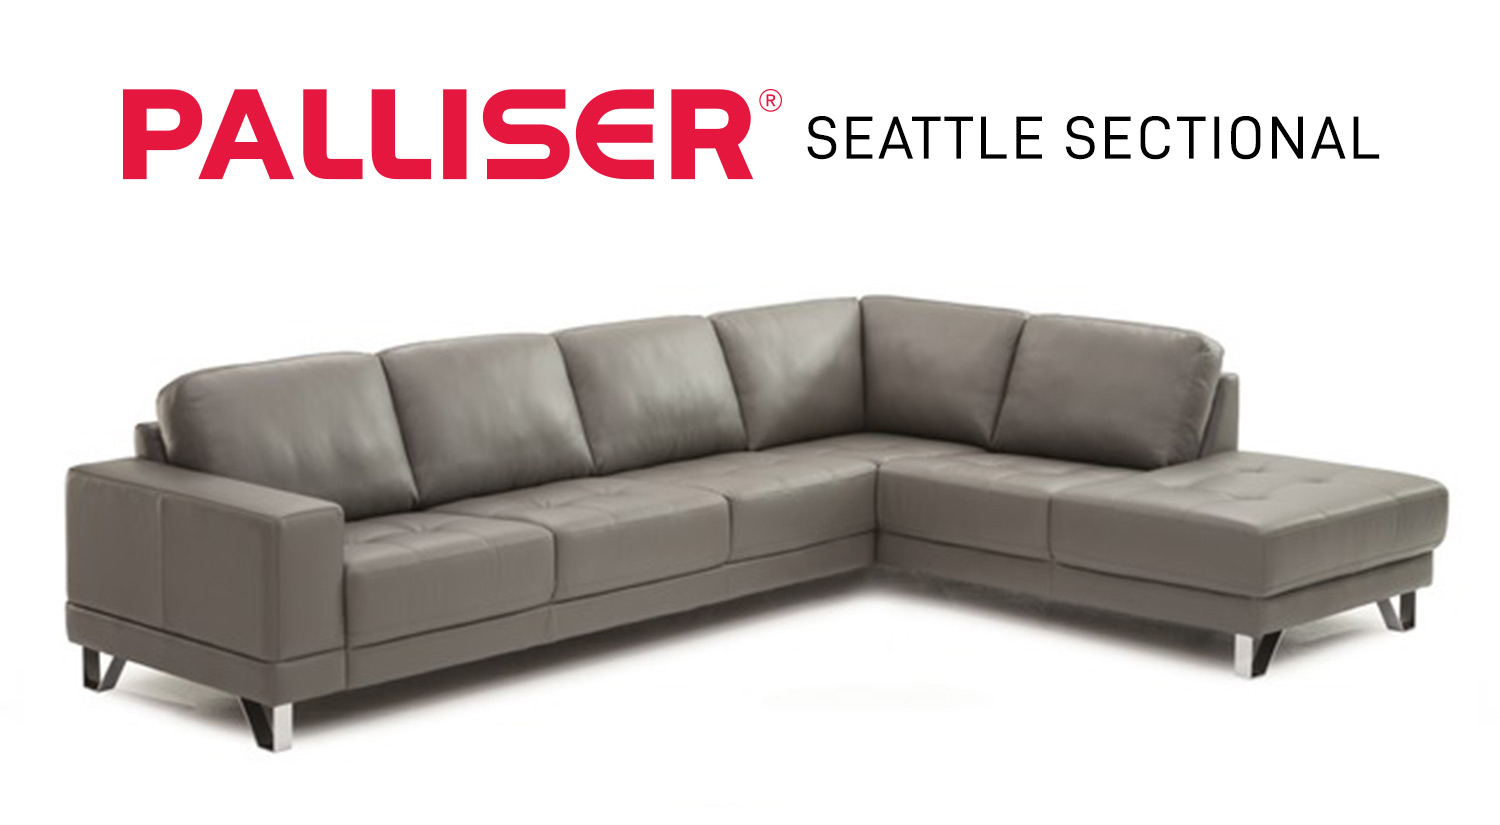 palliser seattle sectional coulters furniture Featured